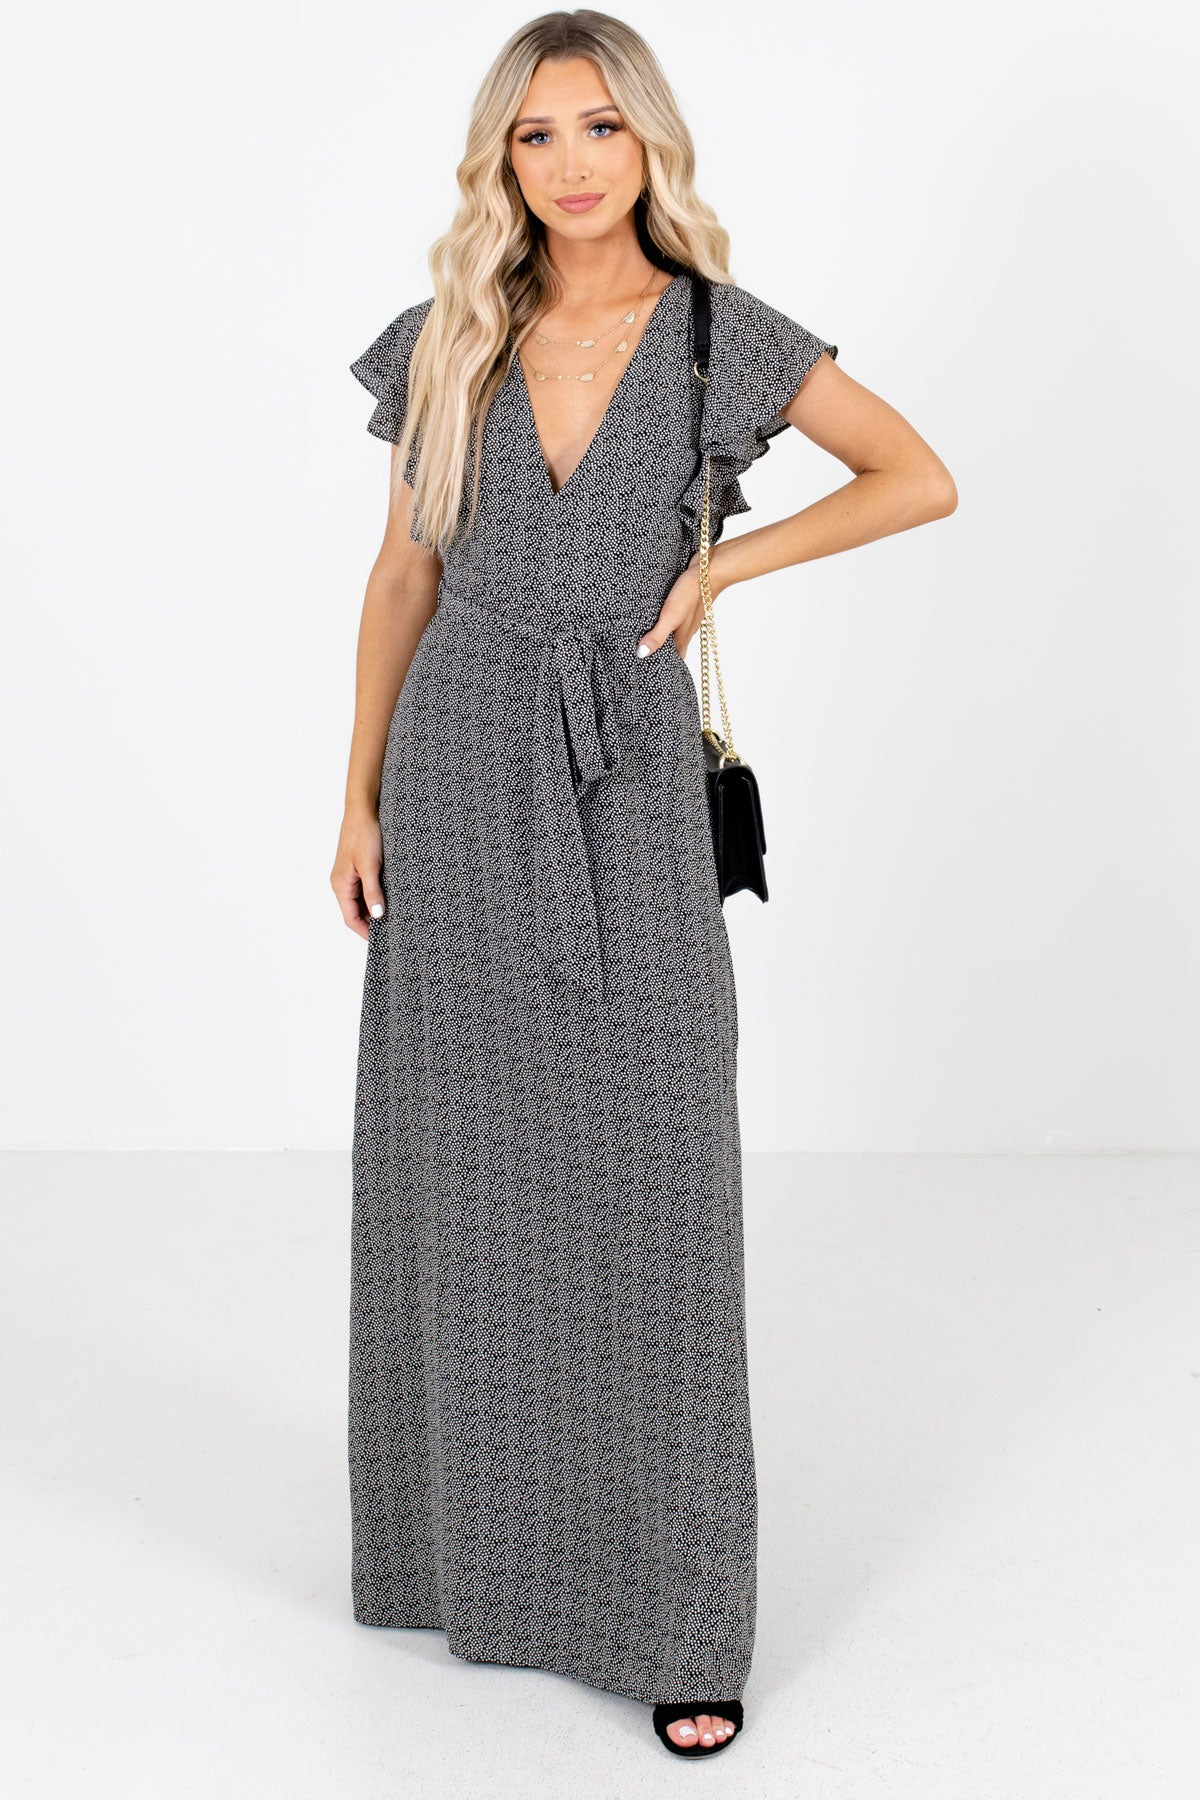 Black and White Abstract Polka Dot Patterned Boutique Maxi Dresses for Women